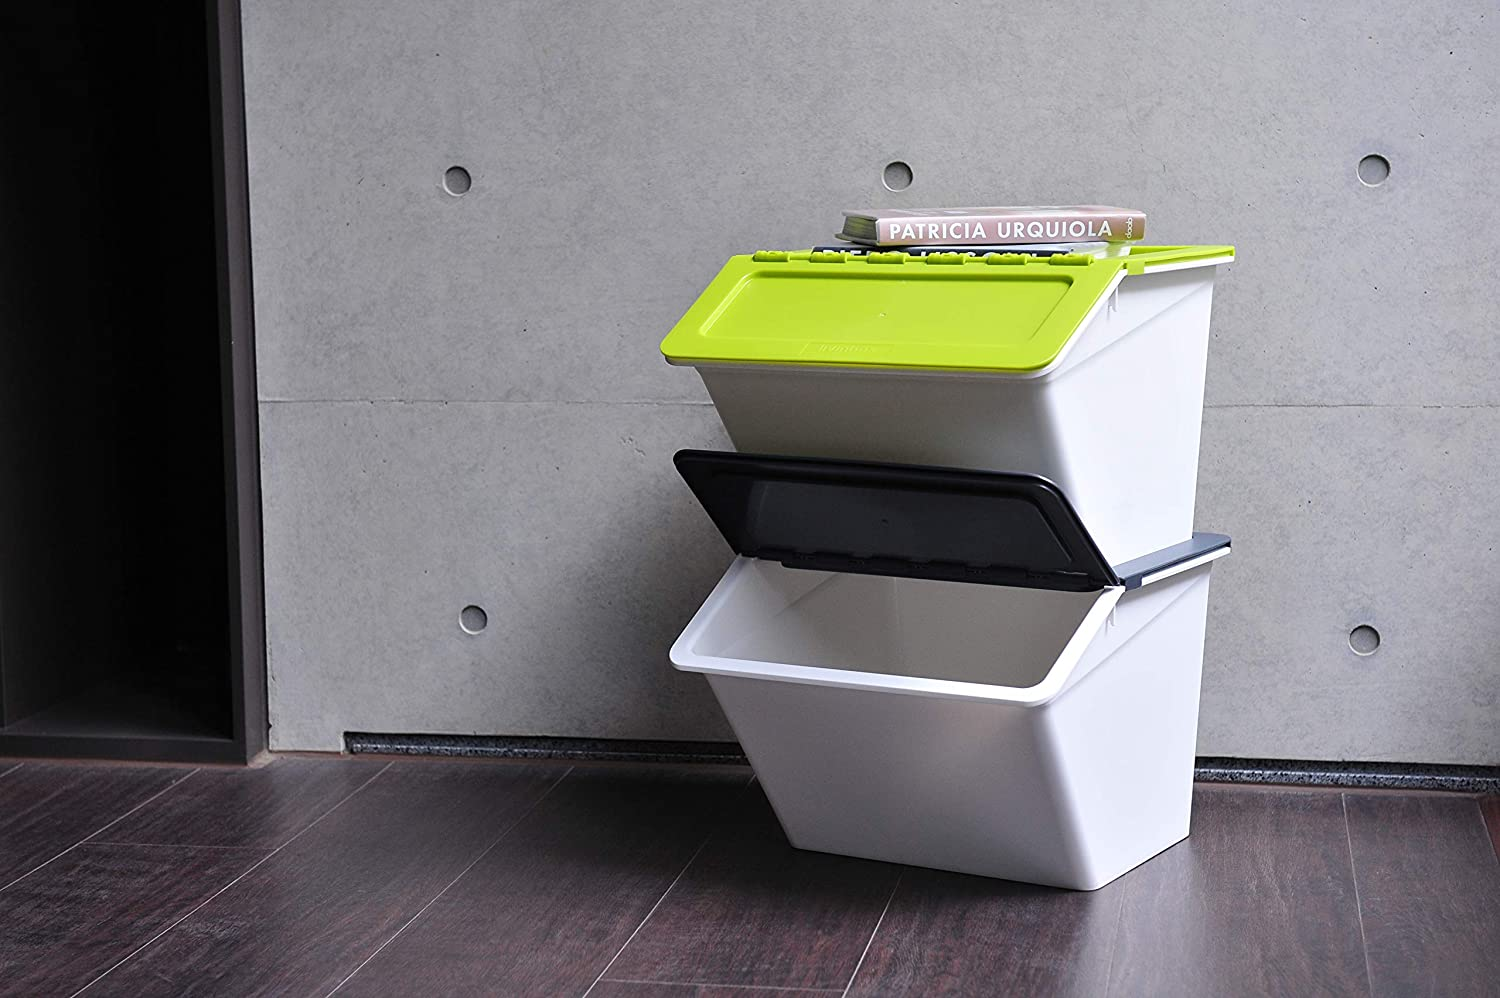 PP Pelican Stackable Bin Organiser Cubes Containers for Toys Tools with Hinged Lids,MHB-2341-Gray livinbox 13L Storage Plastic Box with Lid